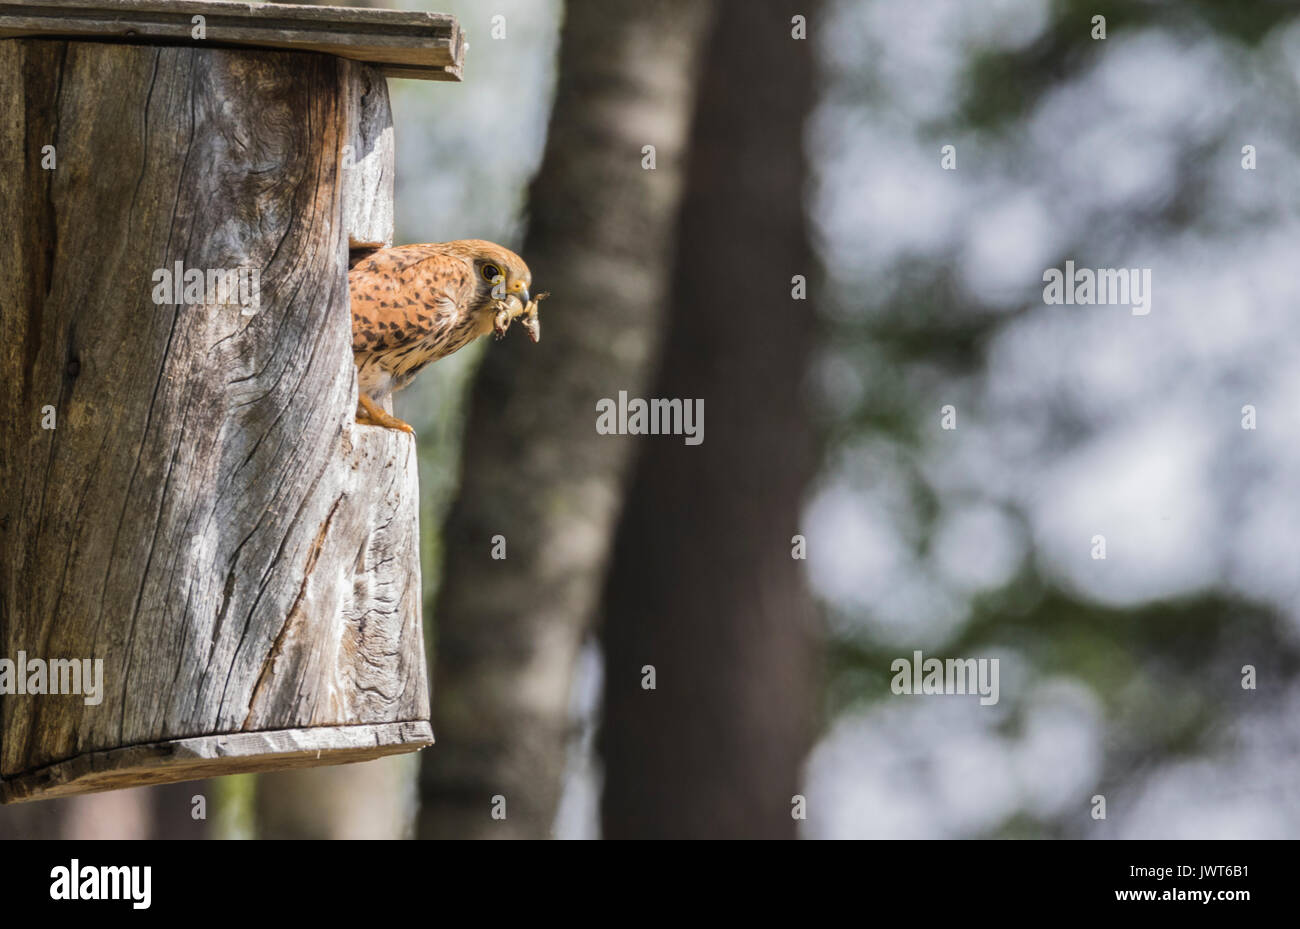 Female Common kestrel, Falco tinnunculus, sitting in a bird-house looking out and having a lizard in her beak, looking in to the camera, Norrbotten, S - Stock Image